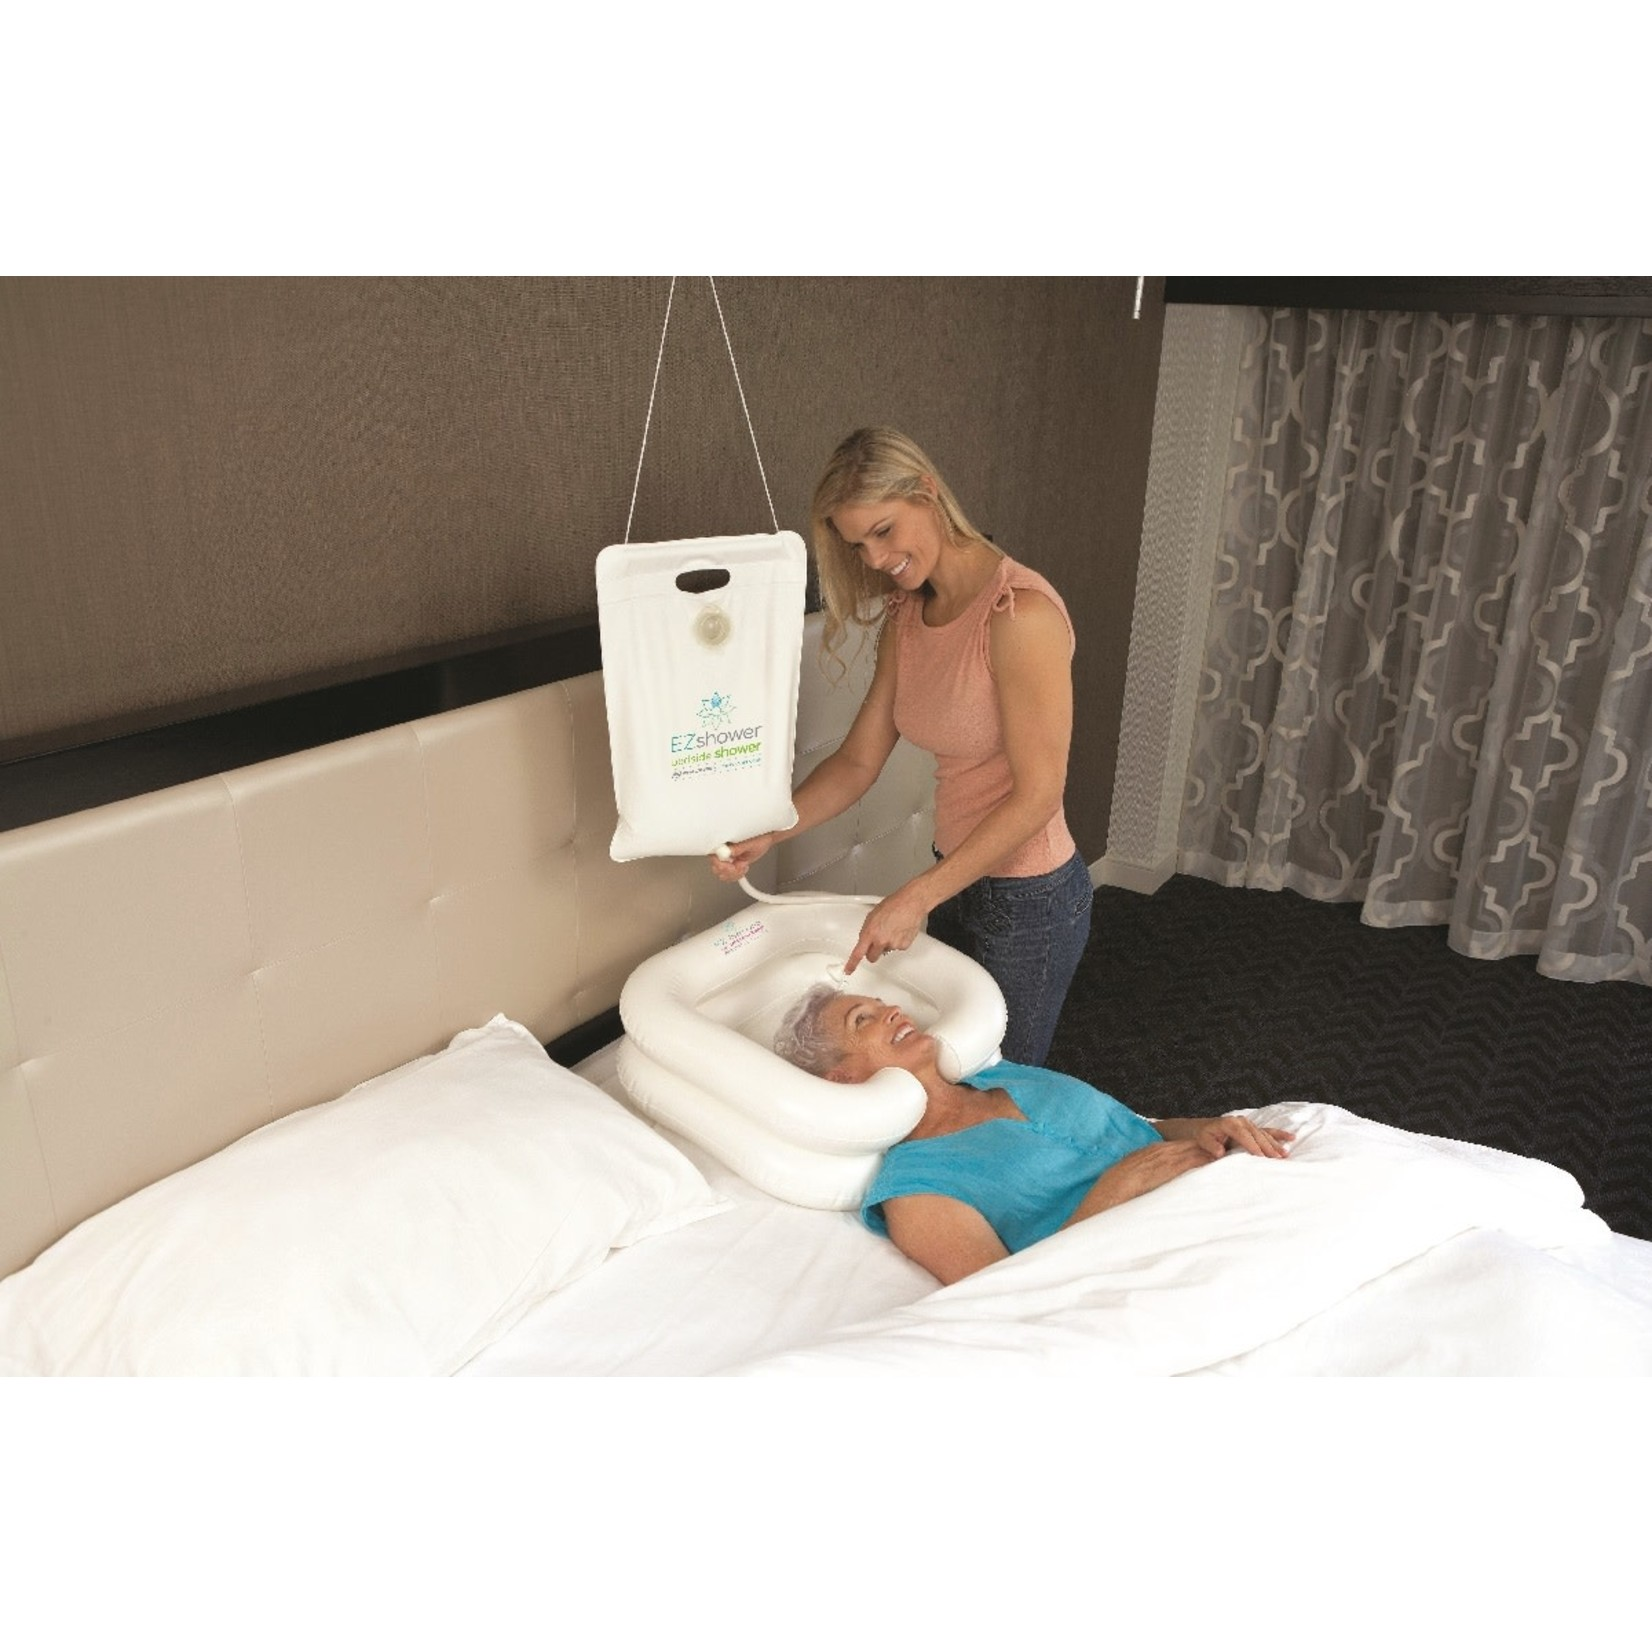 EZ Access EZ-SHOWER BEDSIDE SHOWER